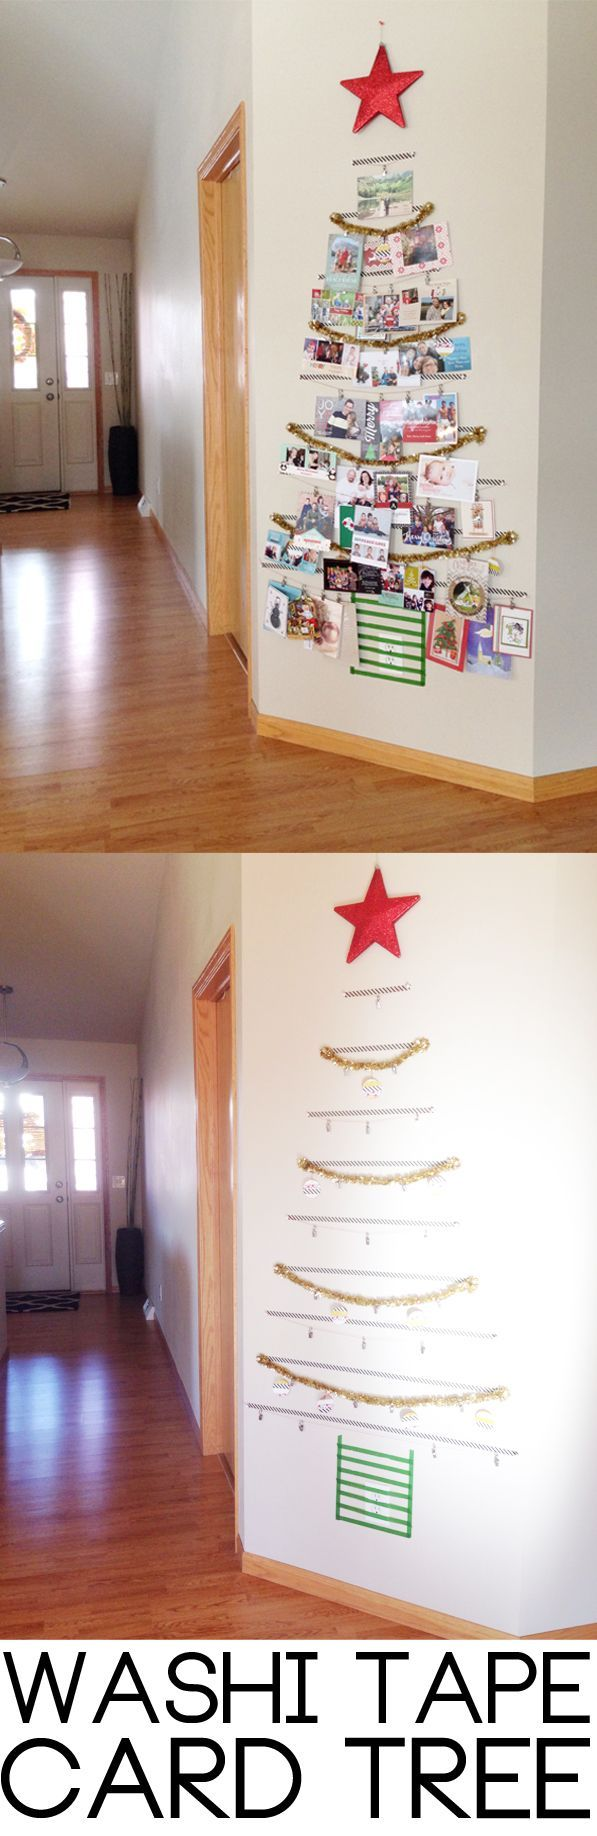 Washi Tape Tree A festive way to organize all of your holiday cardsI would probably do it on a board fixed to the wall